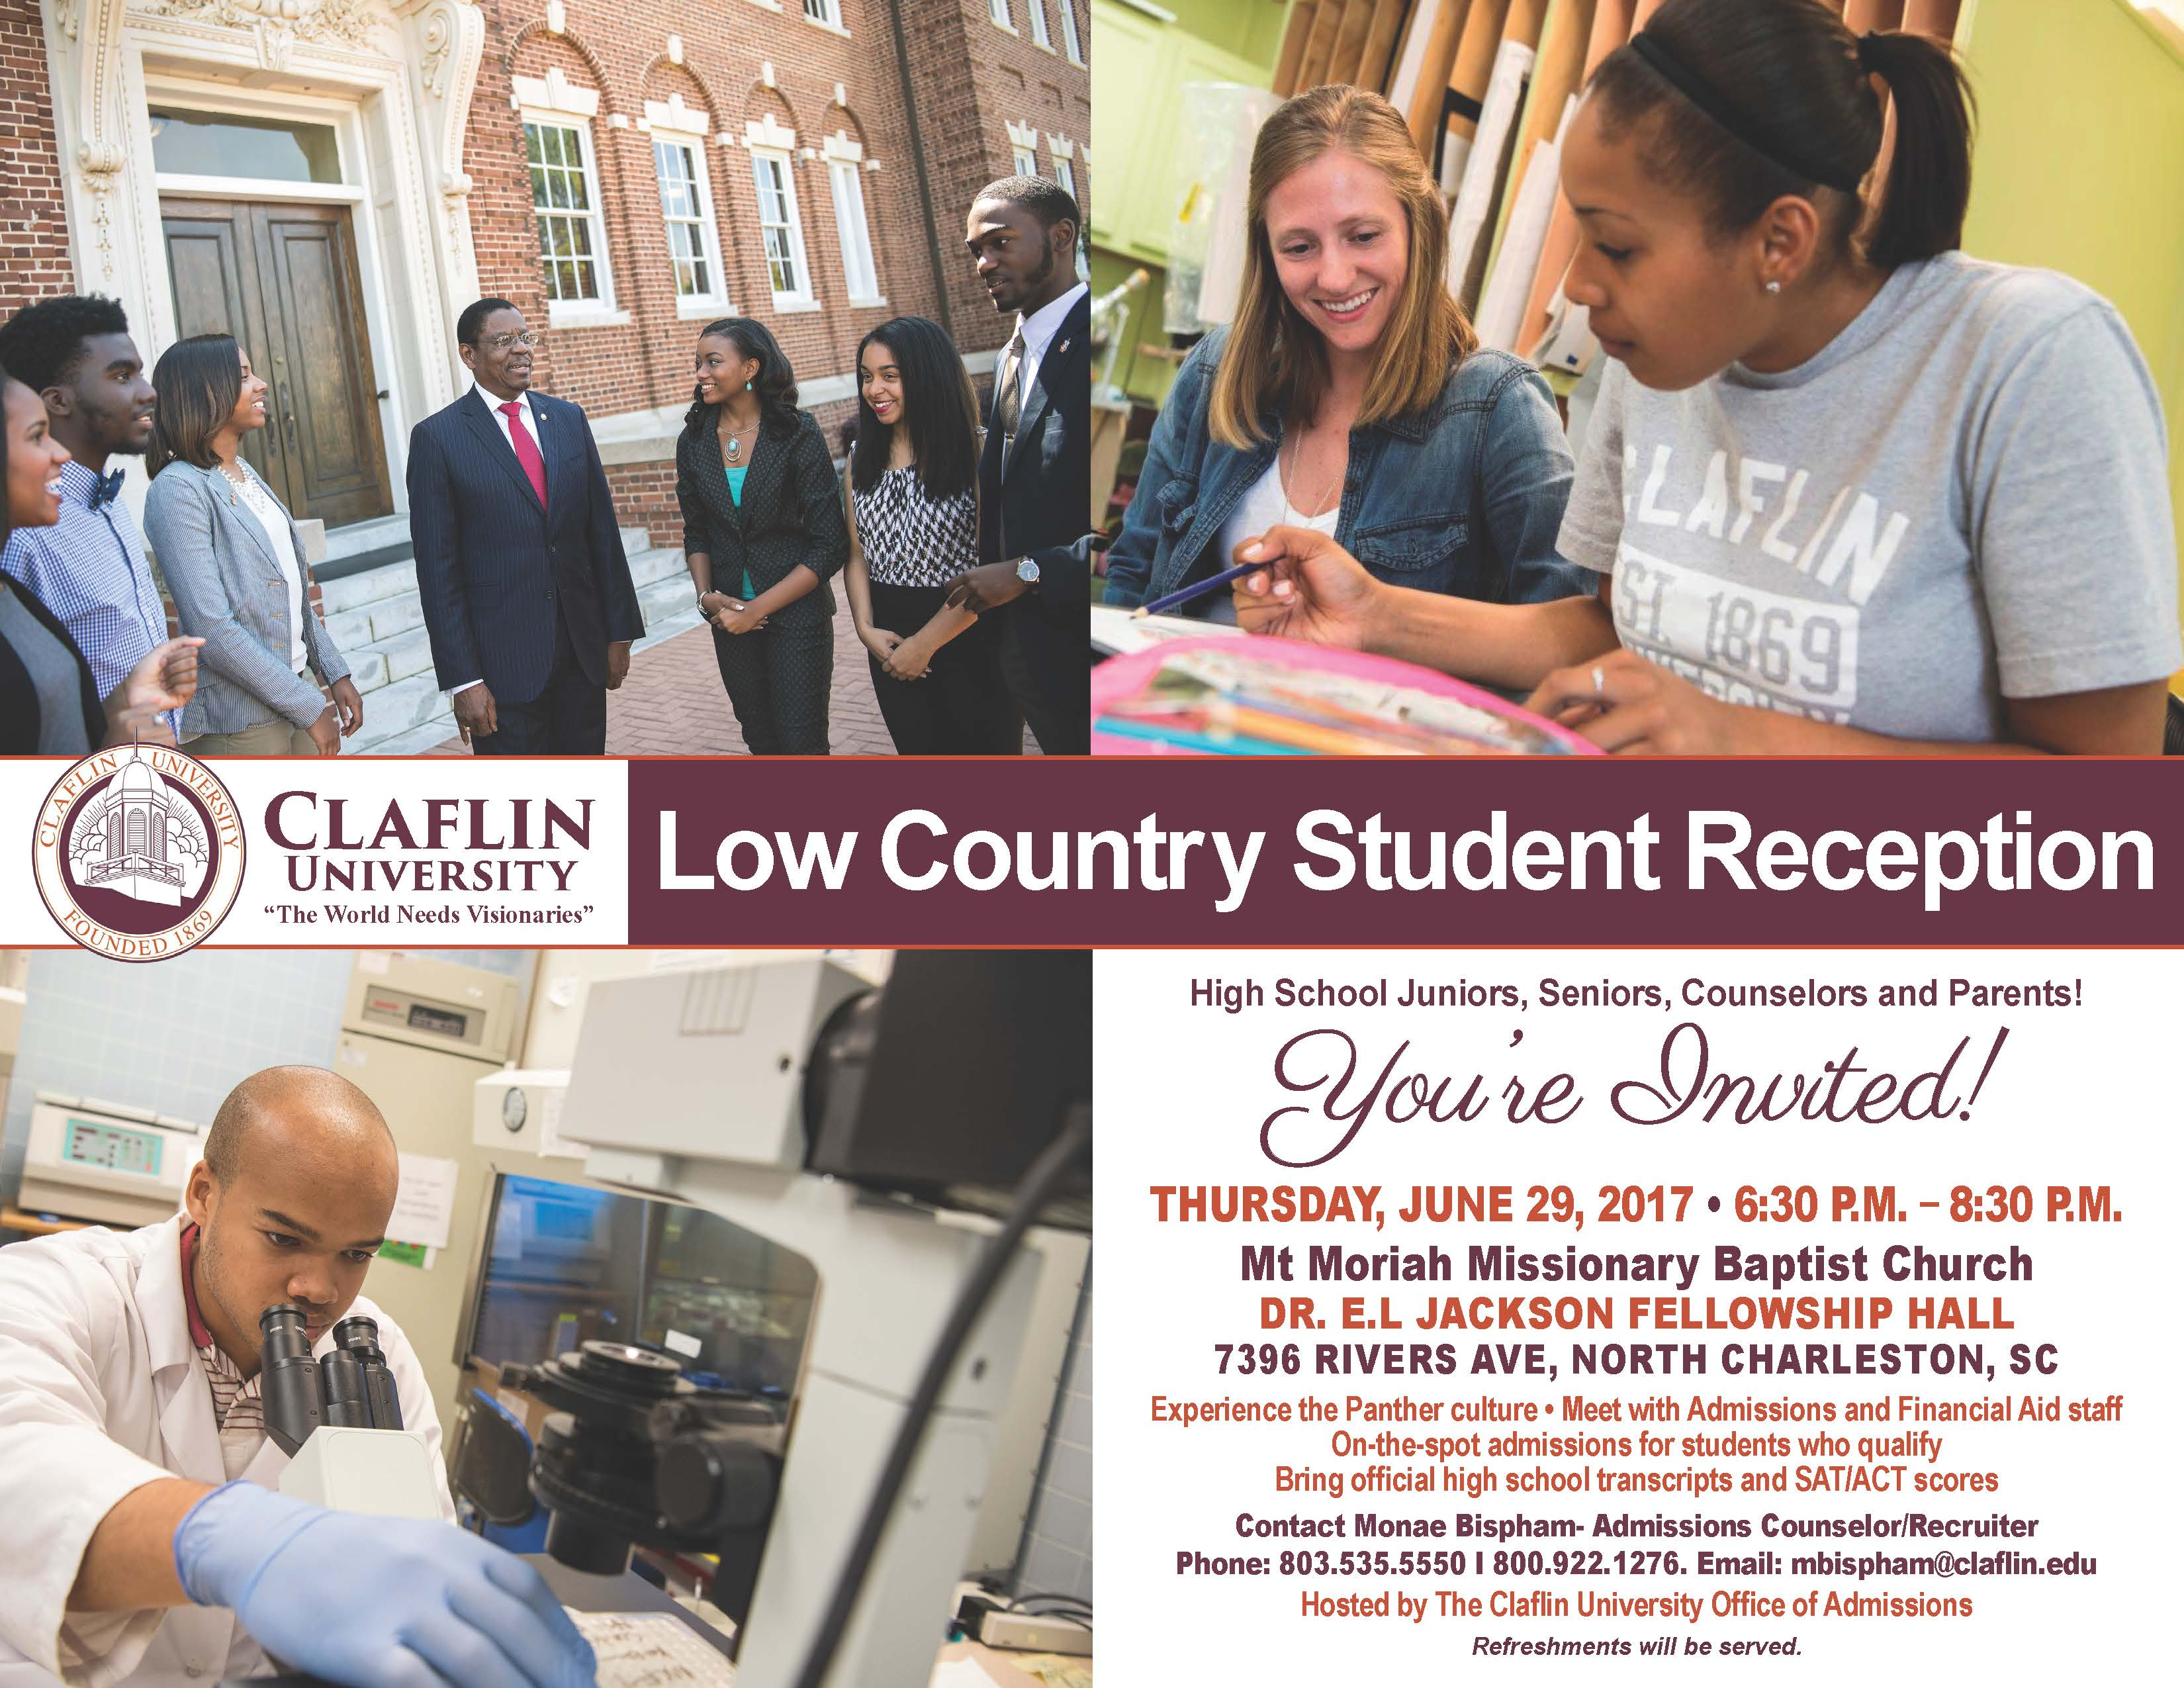 2017 Low Country Student Reception